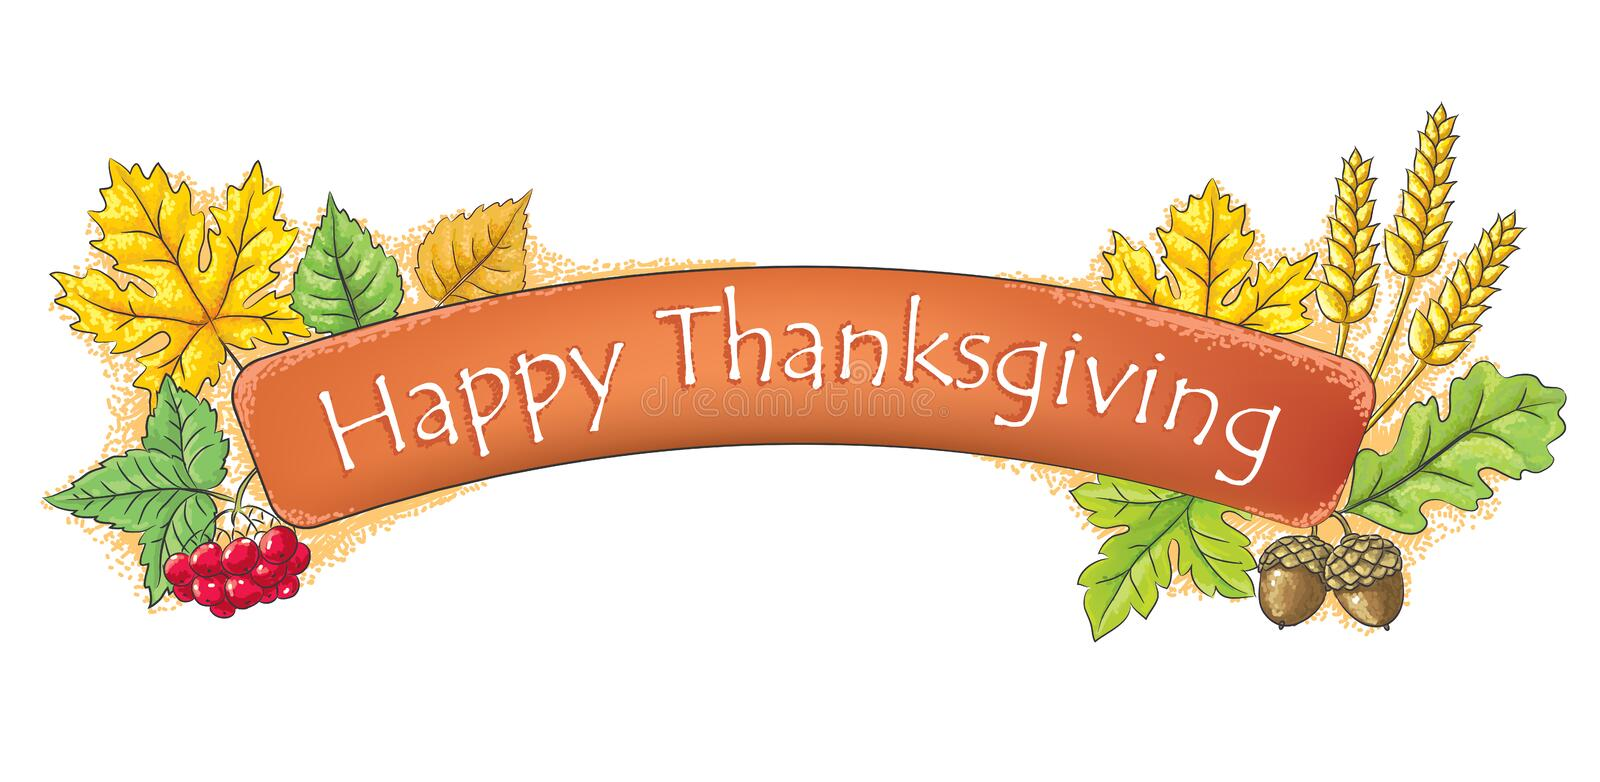 Happy Thanksgiving banner stock image. Image of healthy ...